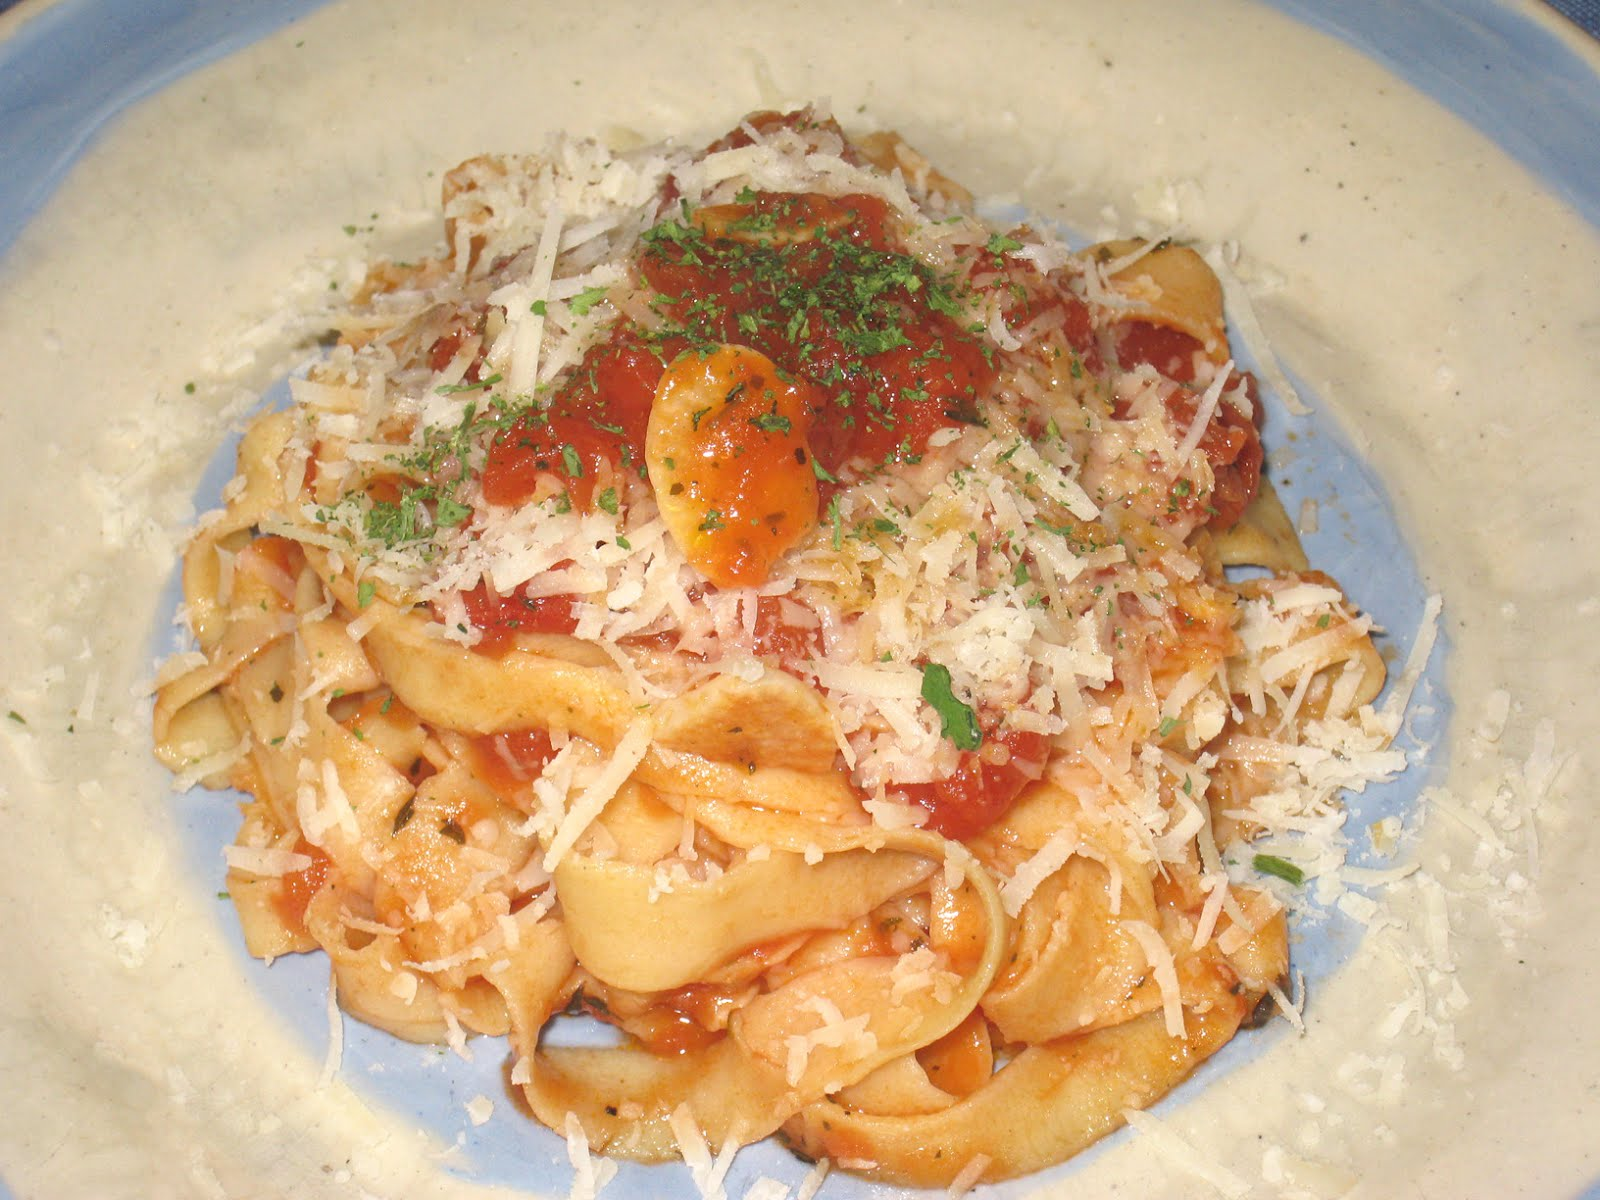 Cooking without a Net: Tomato Garlic Sauce with (Homemade) Pasta